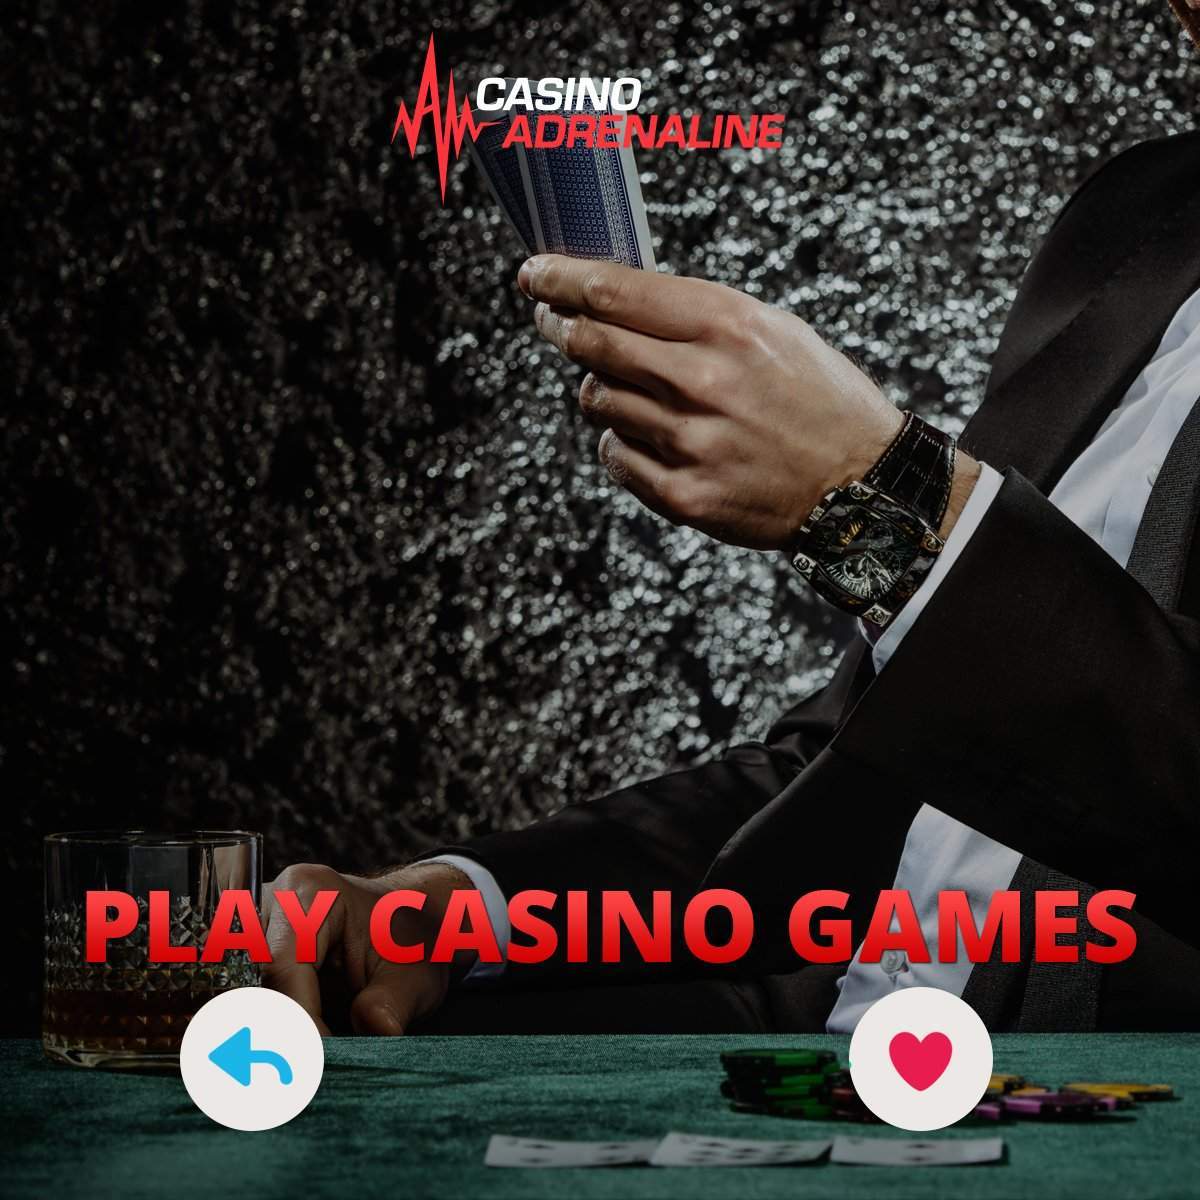 test Twitter Media - Why do we love to play casino games? Here's why...  → https://t.co/tYhcOXLcWp https://t.co/iXpOxczPBi